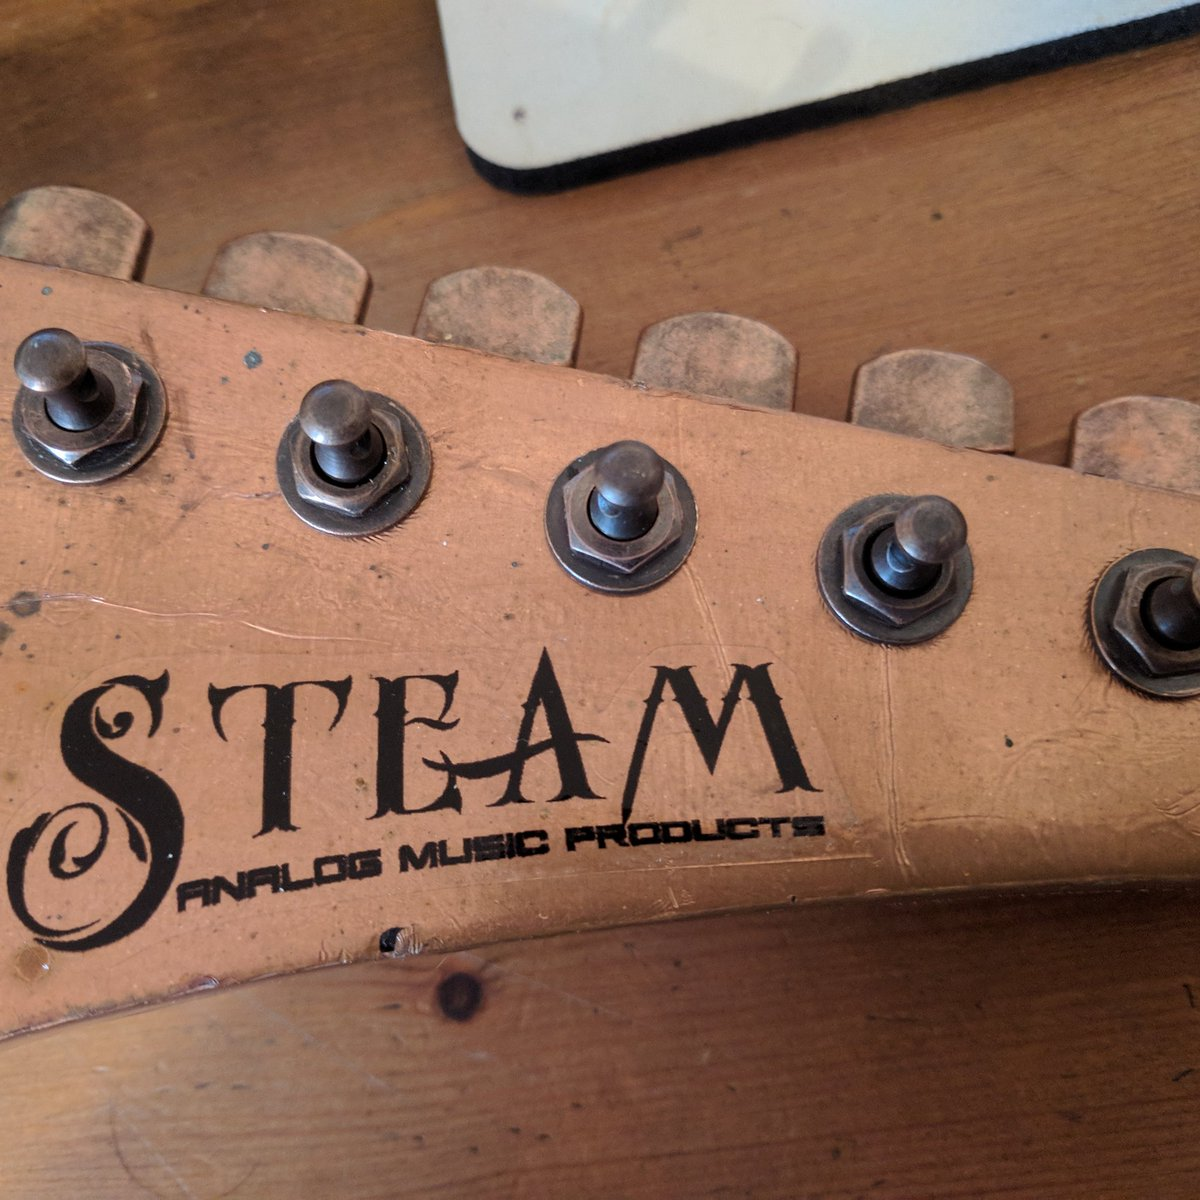 Teaser for next year's Birmingham Guitar Show. #steampunk #copper #guitar #cogs #notmanycogs #whammy #analog #effects #lightshow #rocknroll